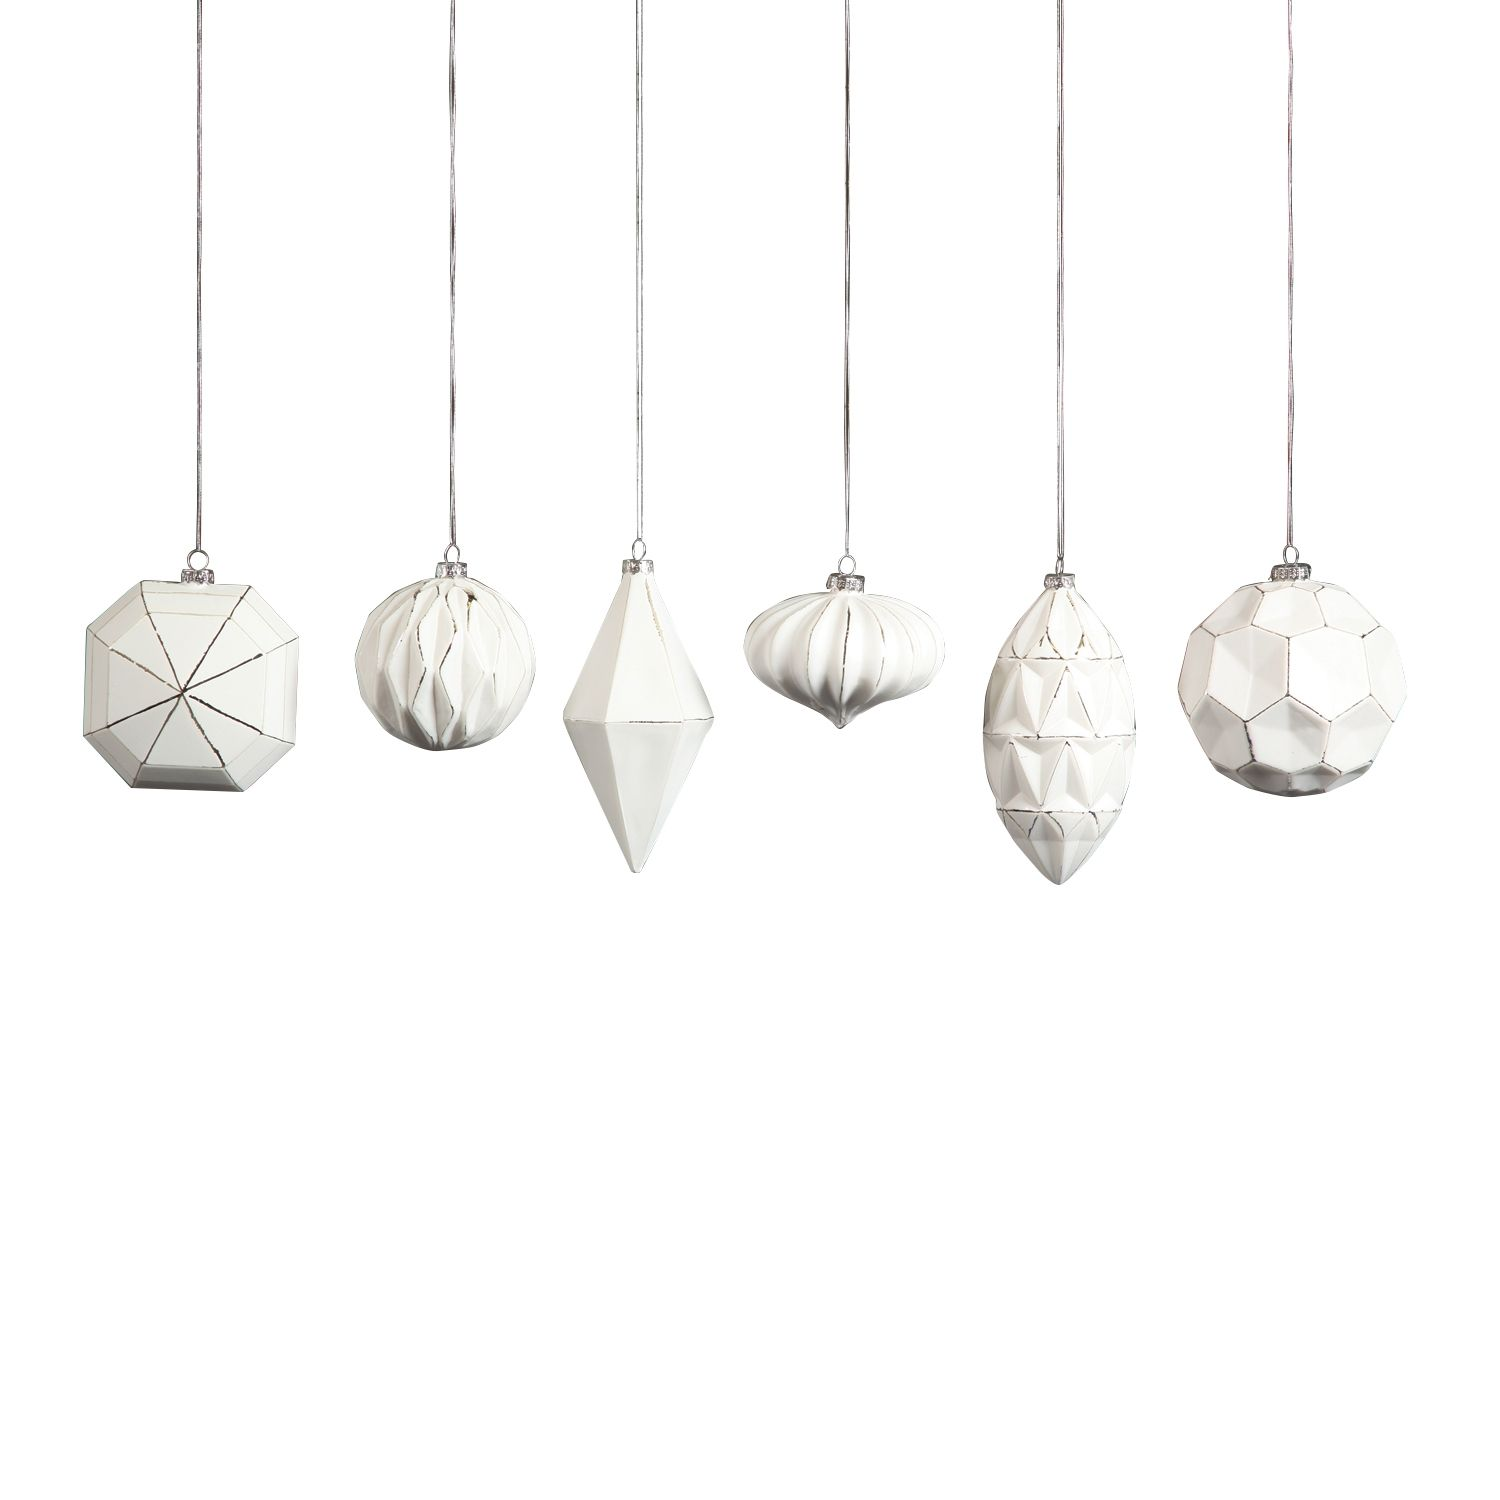 White and Silver Geo Glass Ornaments by HomArt - Seven Colonial